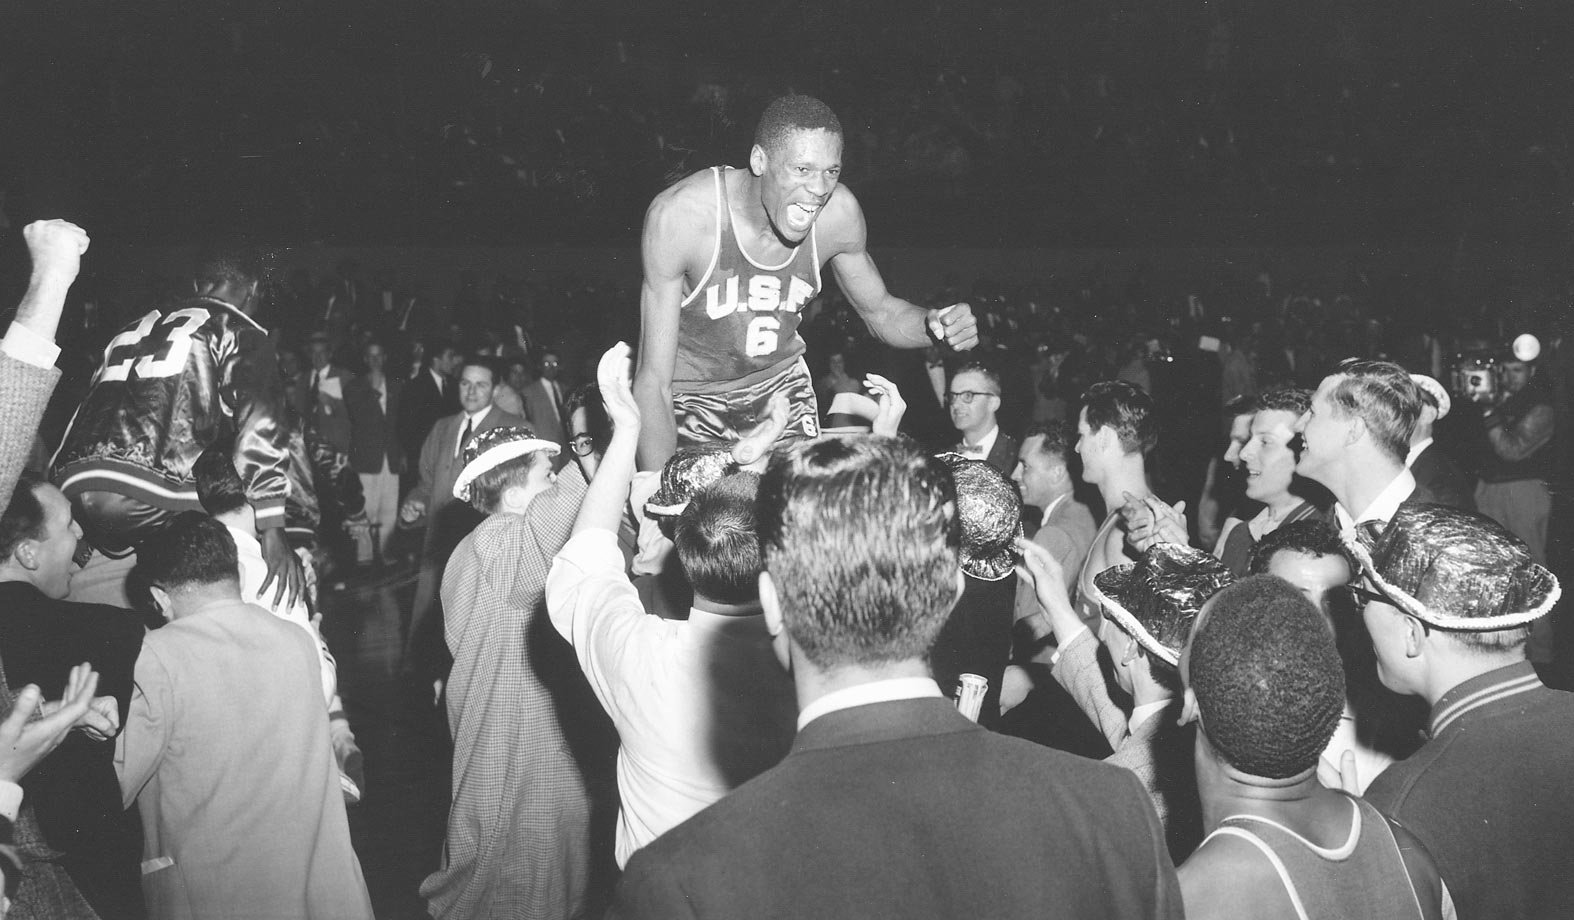 San Francisco's Bill Russell gets a ride off the court after defeating La Salle, 77-63, to win the title in Kansas City. Russell was named most outstanding player after scoring 47 points.